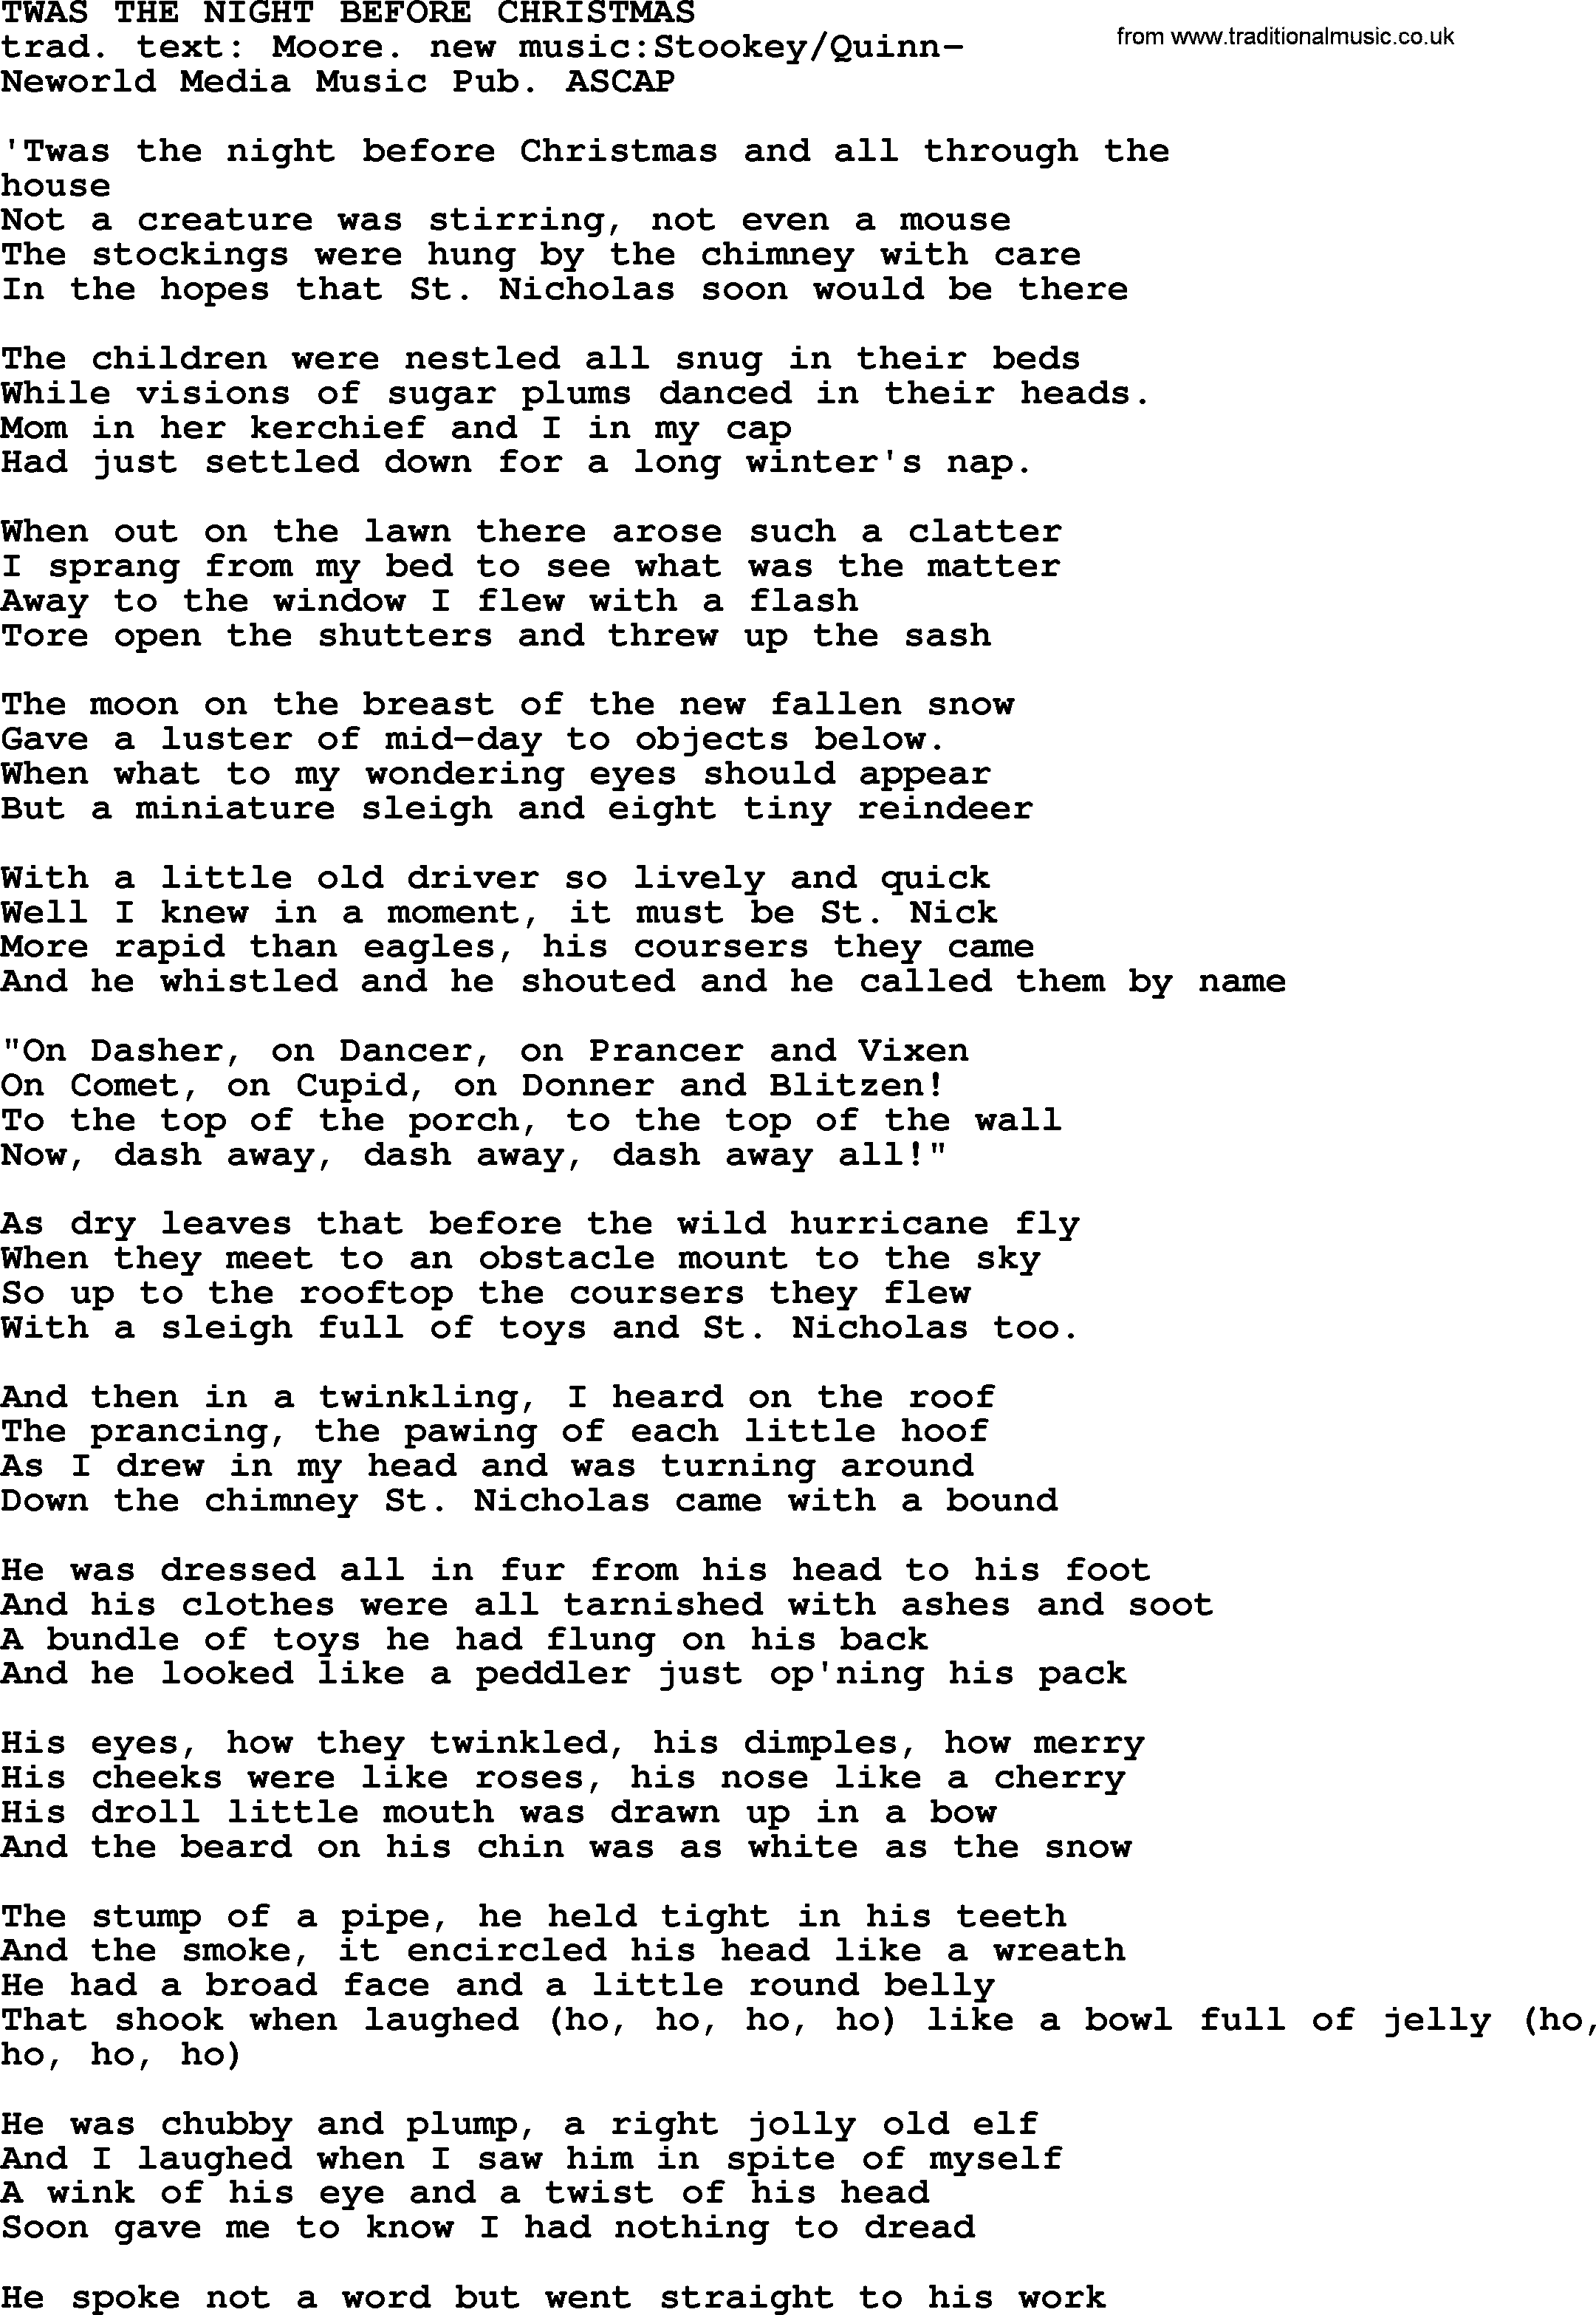 Peter, Paul and Mary song: Twas The Night Before Christmas, lyrics